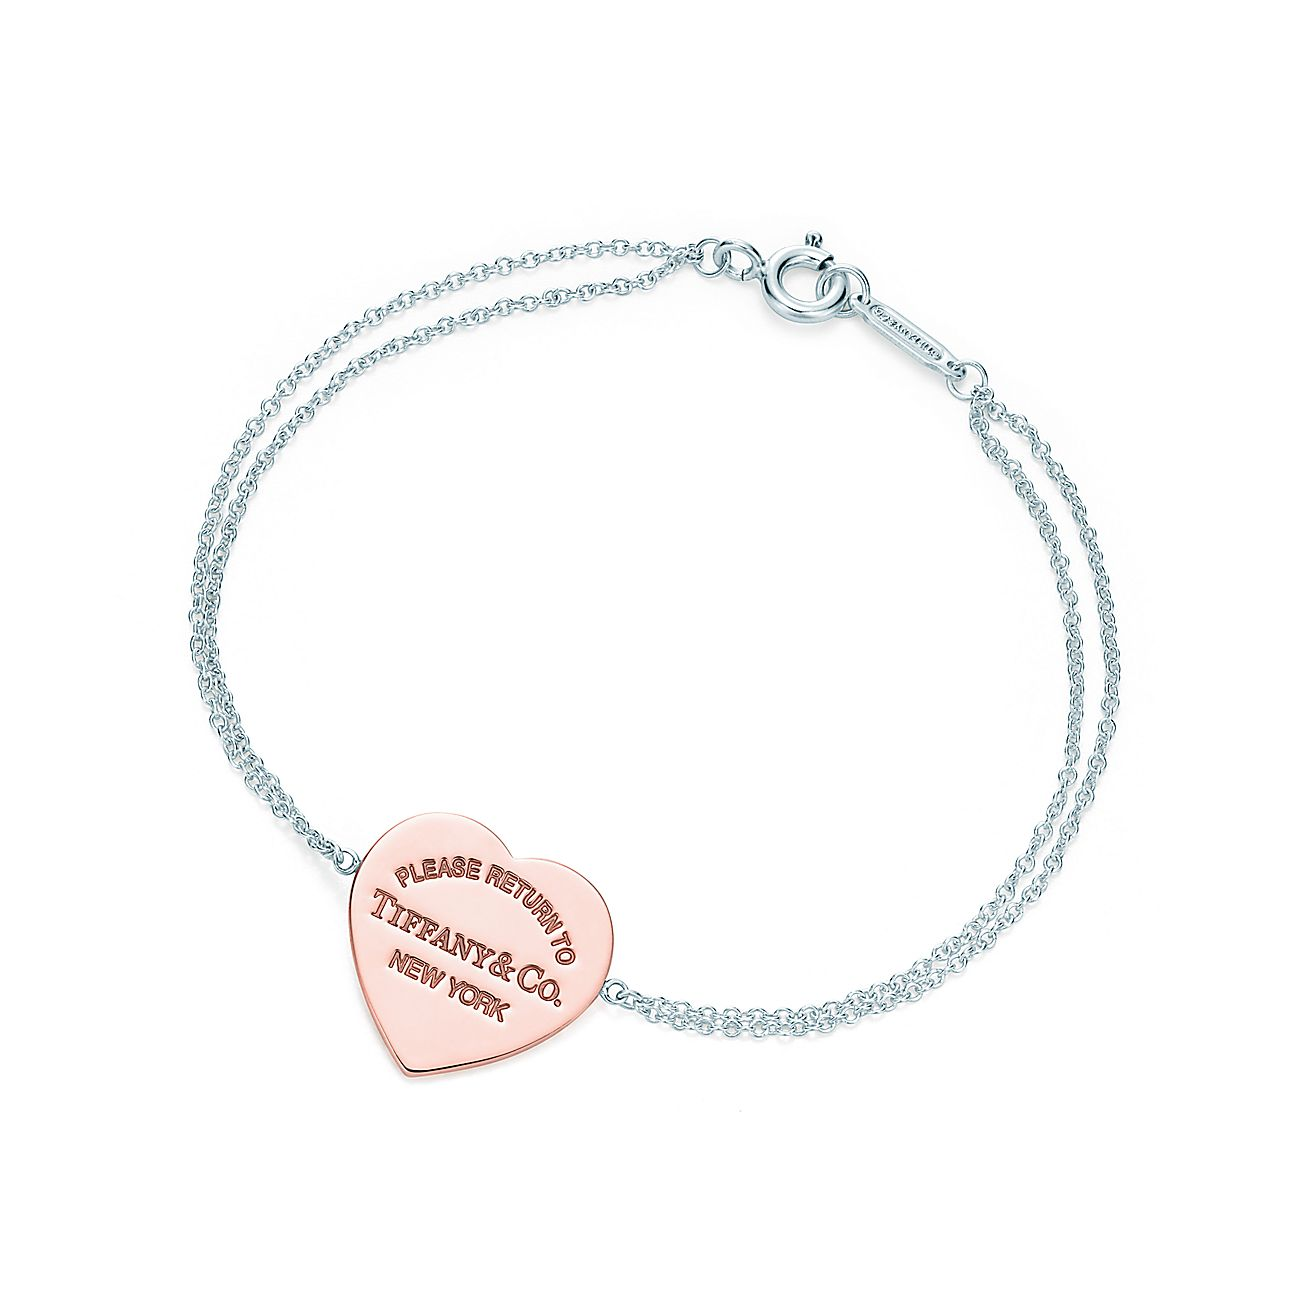 Return to tiffany heart bracelet in rubedo metal and for Starting a jewelry business in canada